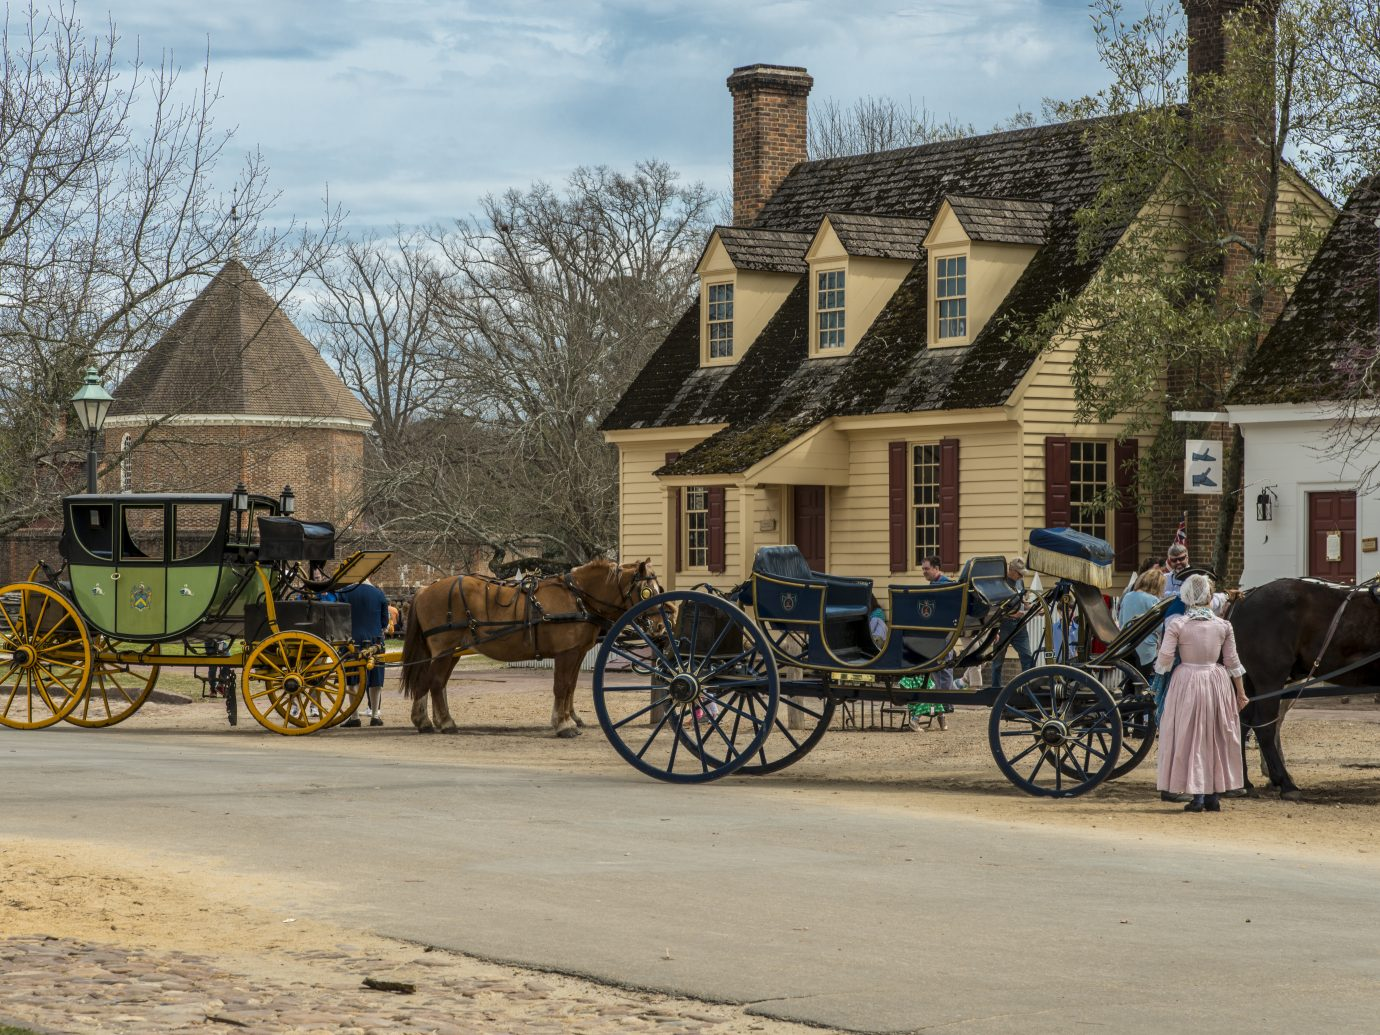 Horse drawn carriage tours in British Colony in Williamsburg, Virginia, USA.